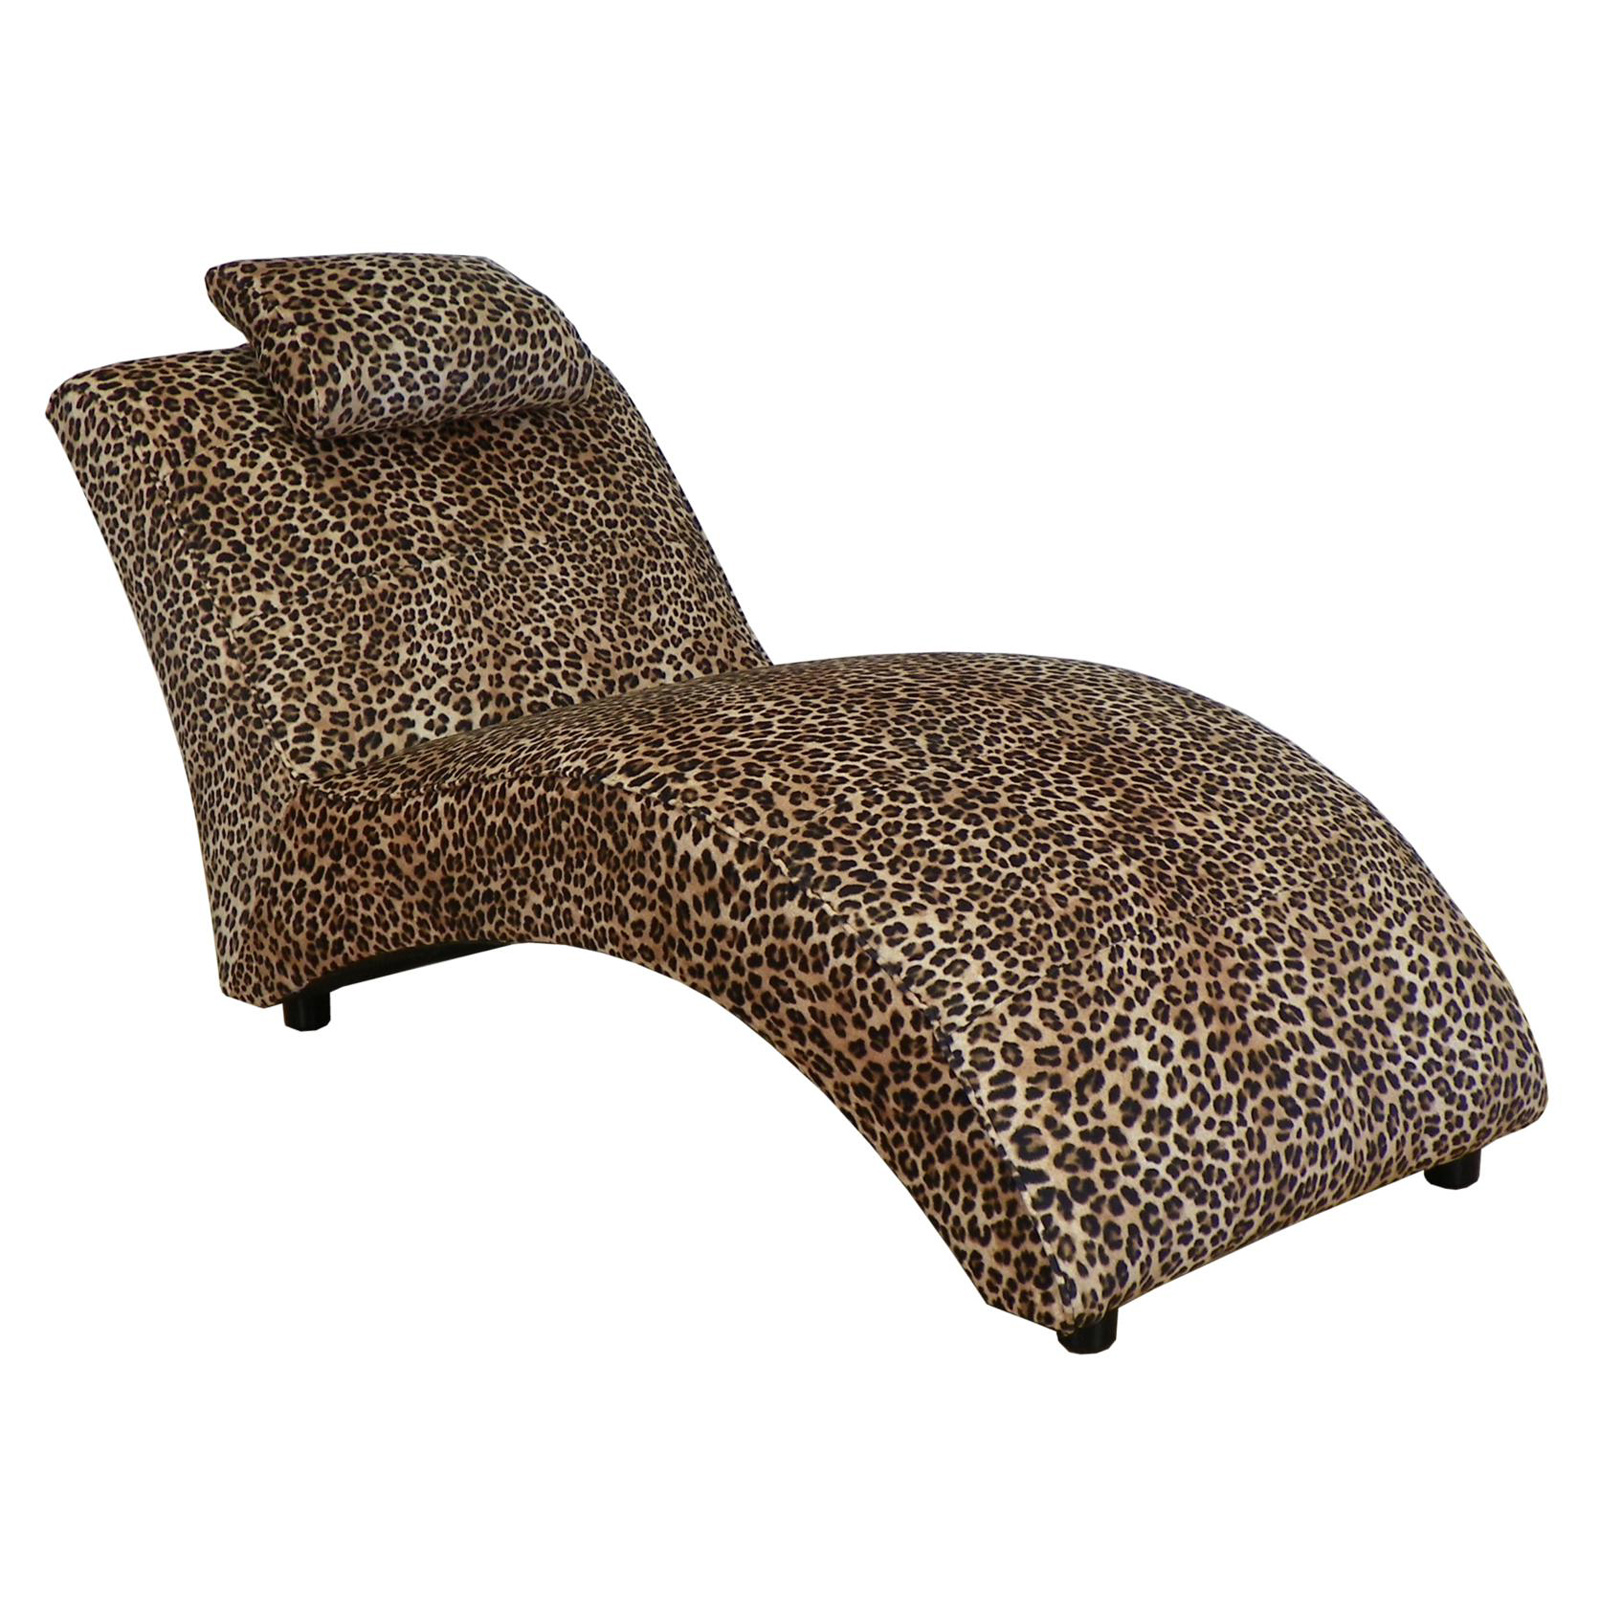 Leopard chaise lounge leopard chaise lounge leopard for Animal print chaise